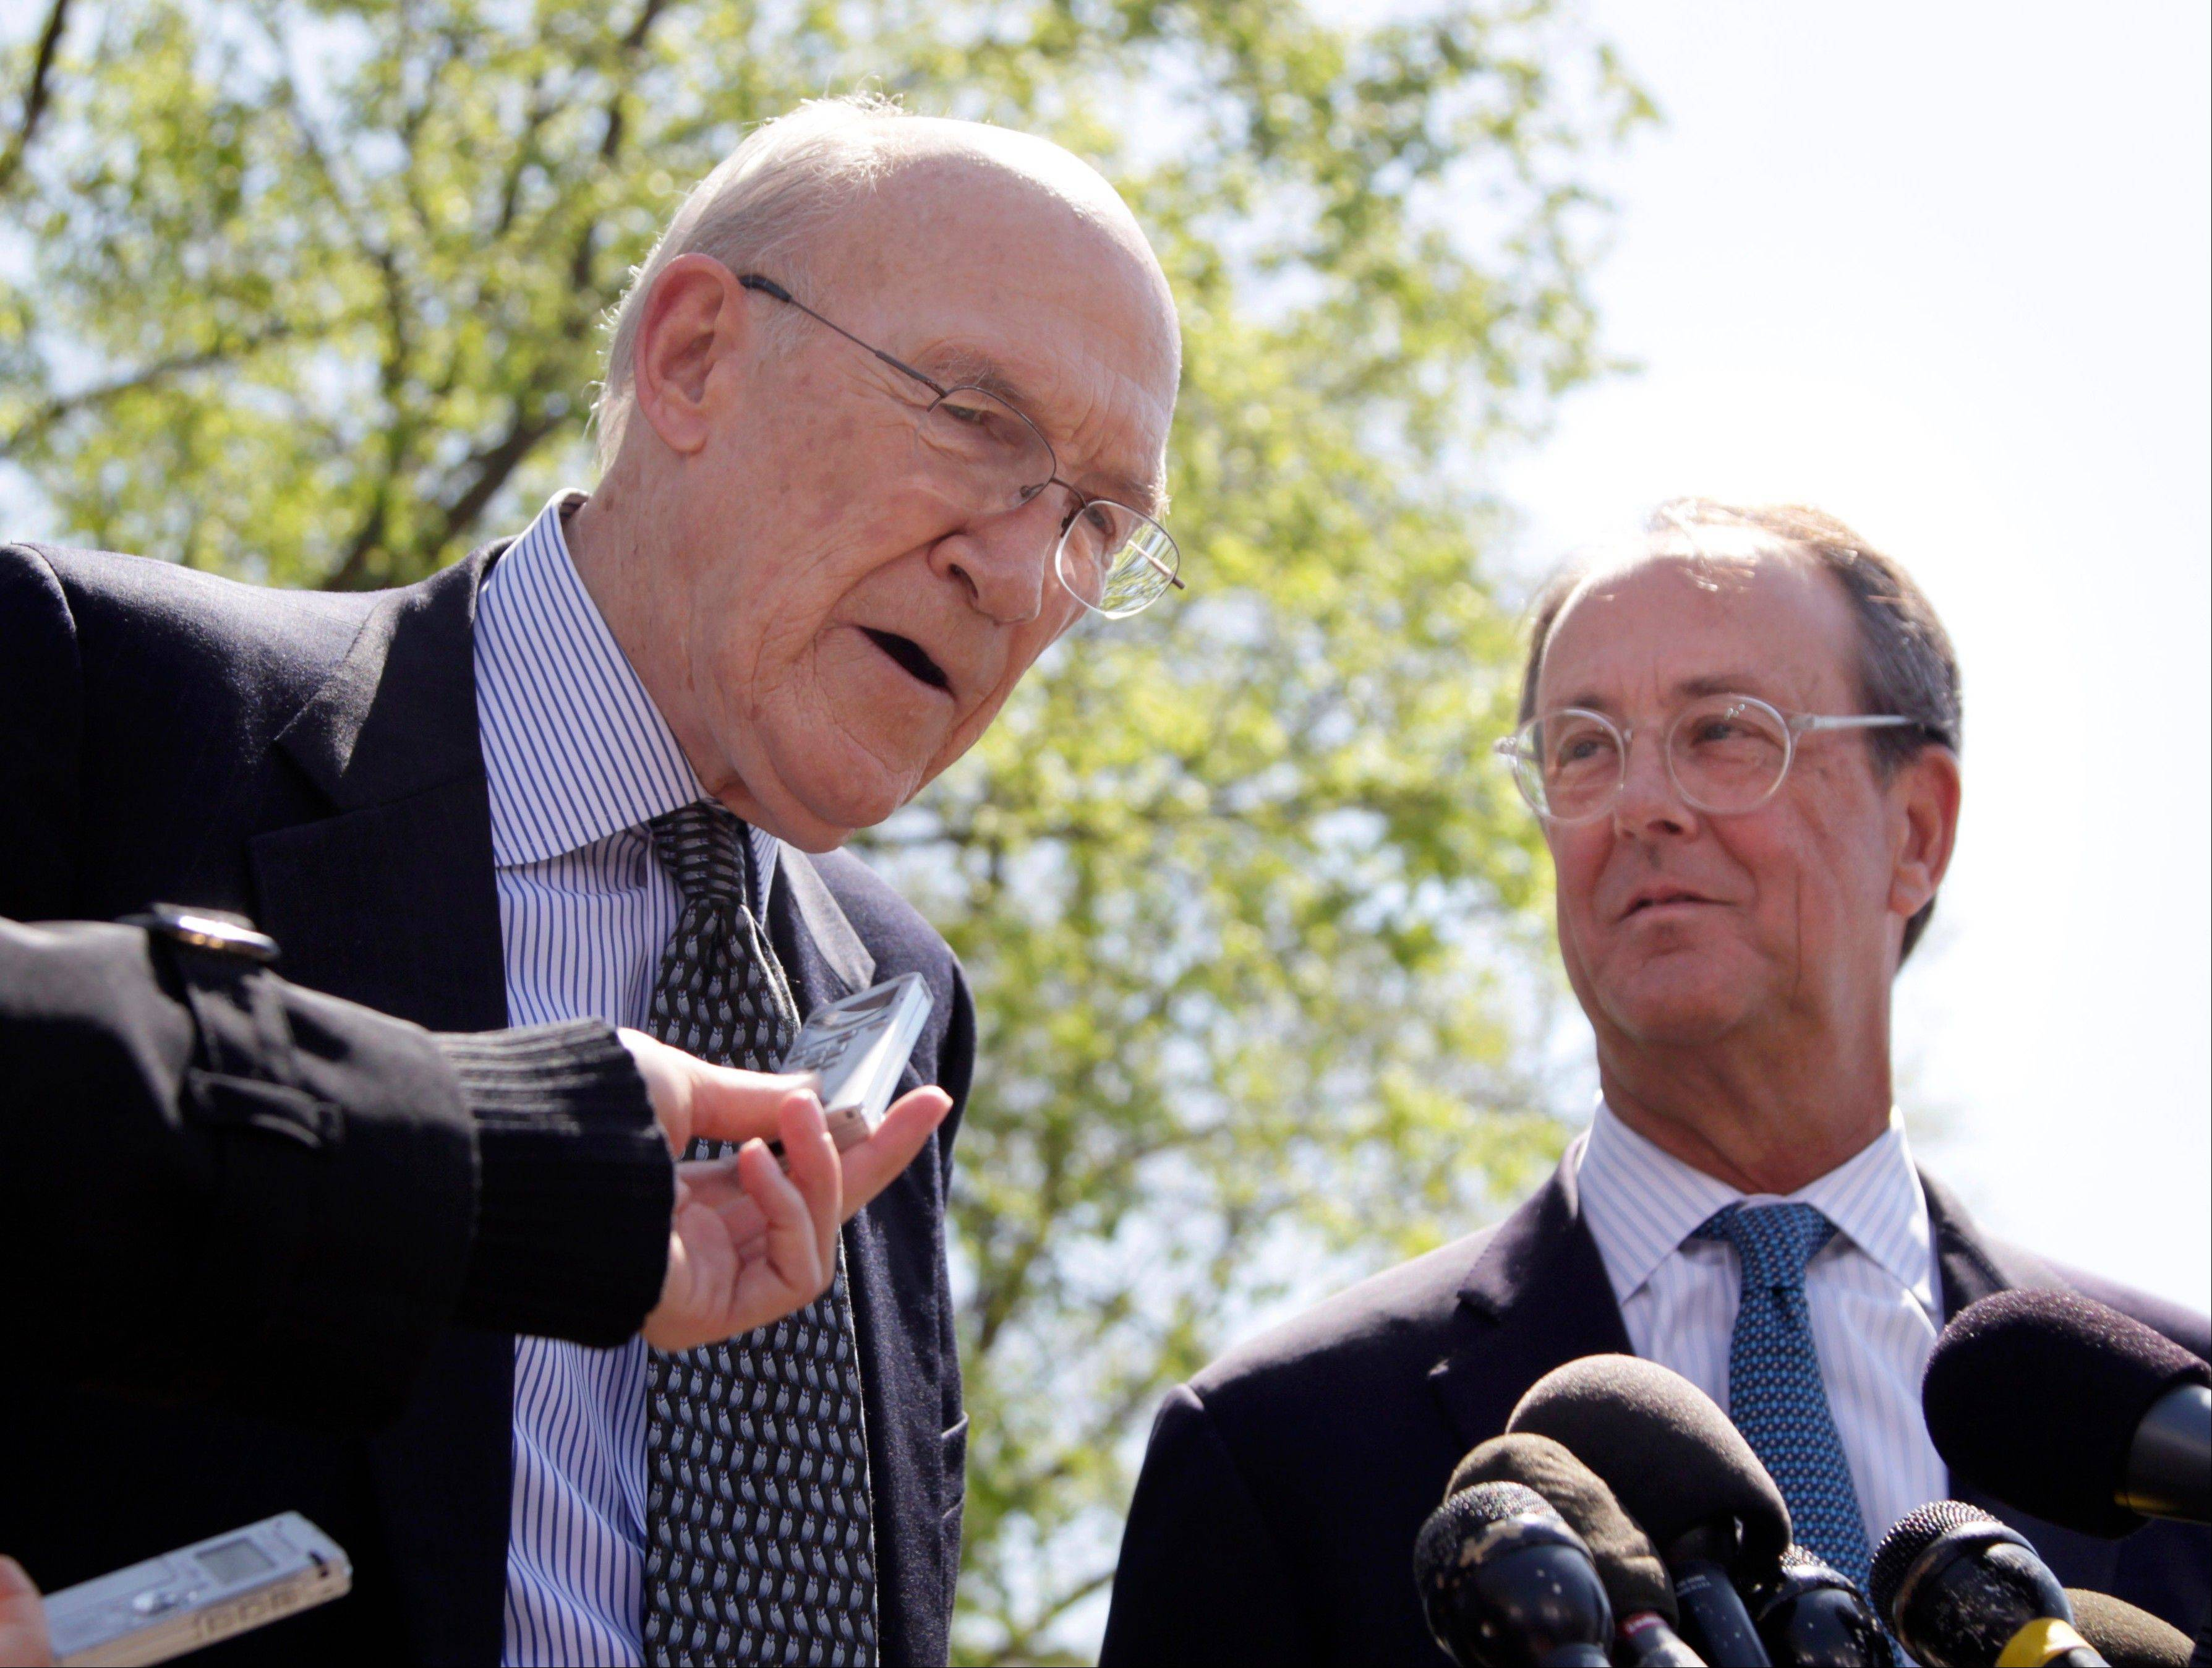 Erskine Bowles, right, Alan Simpson, co-chairmen of the president's deficit reduction commission, are seen outside the White House in this file photo from April 14, 2011. Lobbyists, advocates and trade groups are fighting fight to shape the government's response to the looming fiscal cliff.